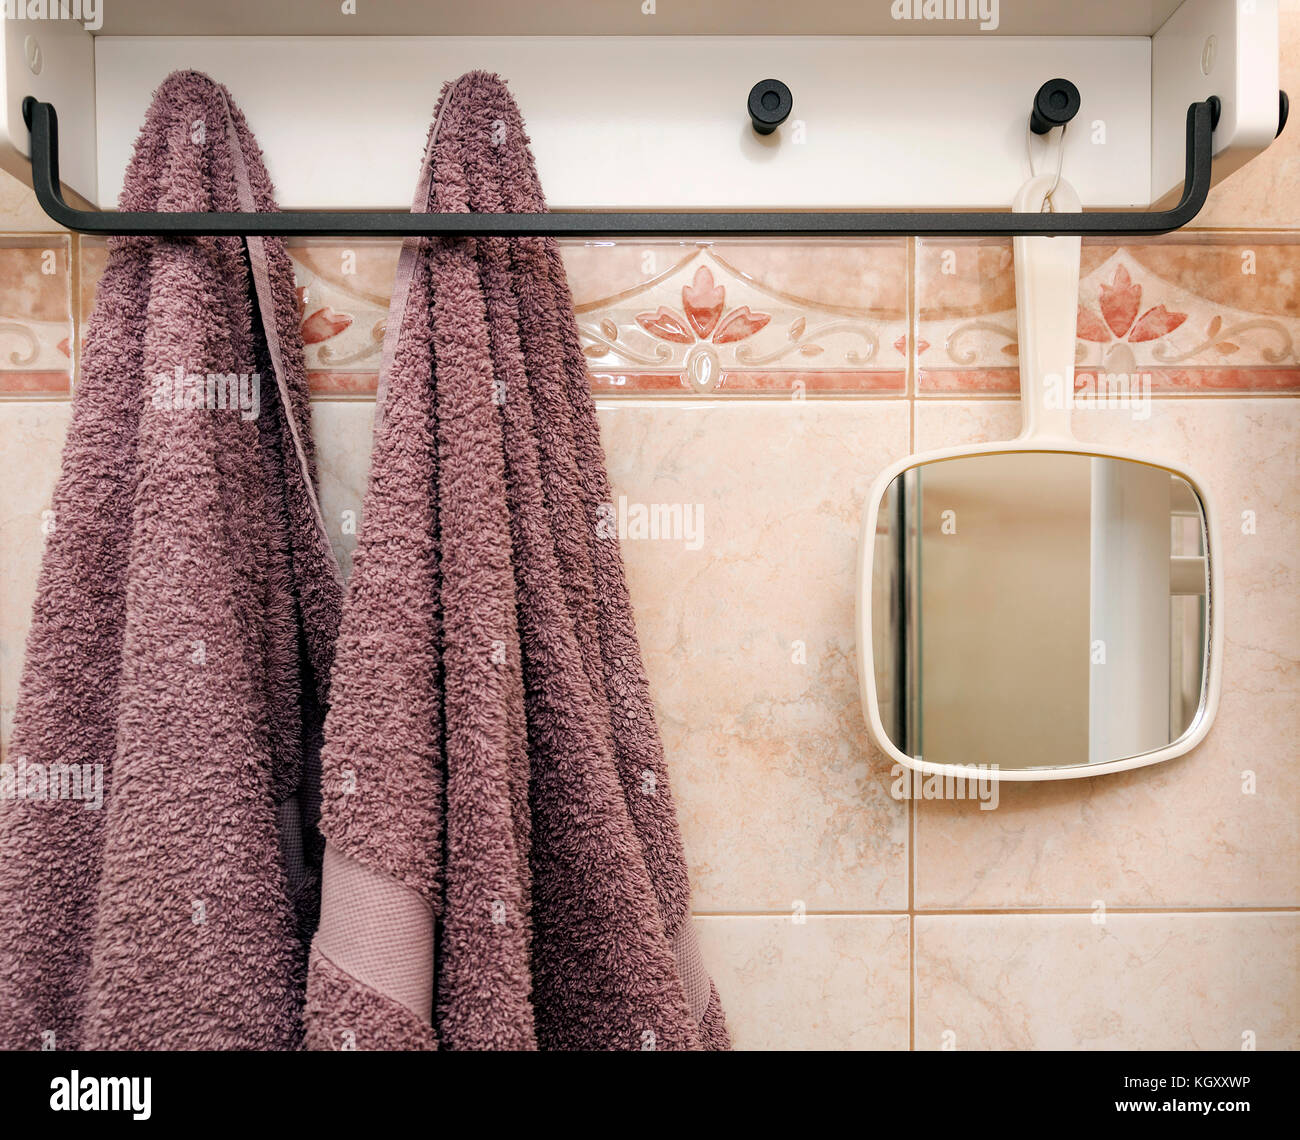 Gegenstand Im Badezimmer Mit C Hanging Hotel Towels Stockfotos And Hanging Hotel Towels